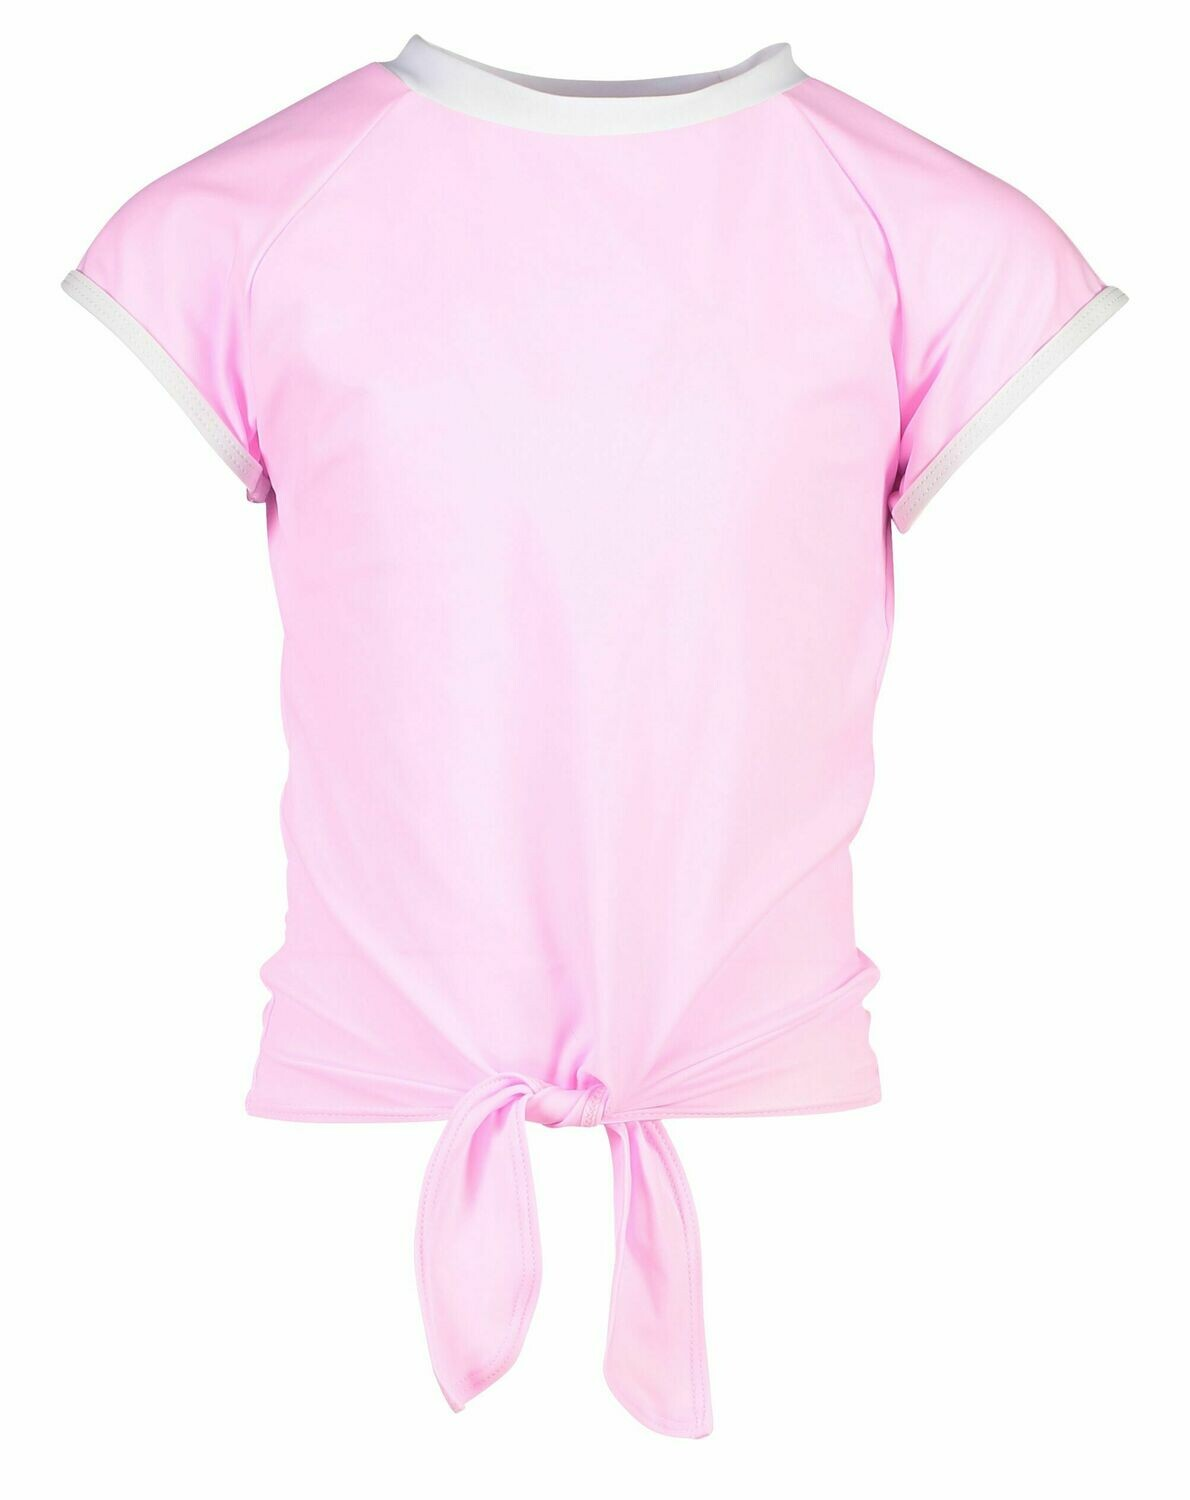 Snapper Rock Pink Knot Front Rash Top